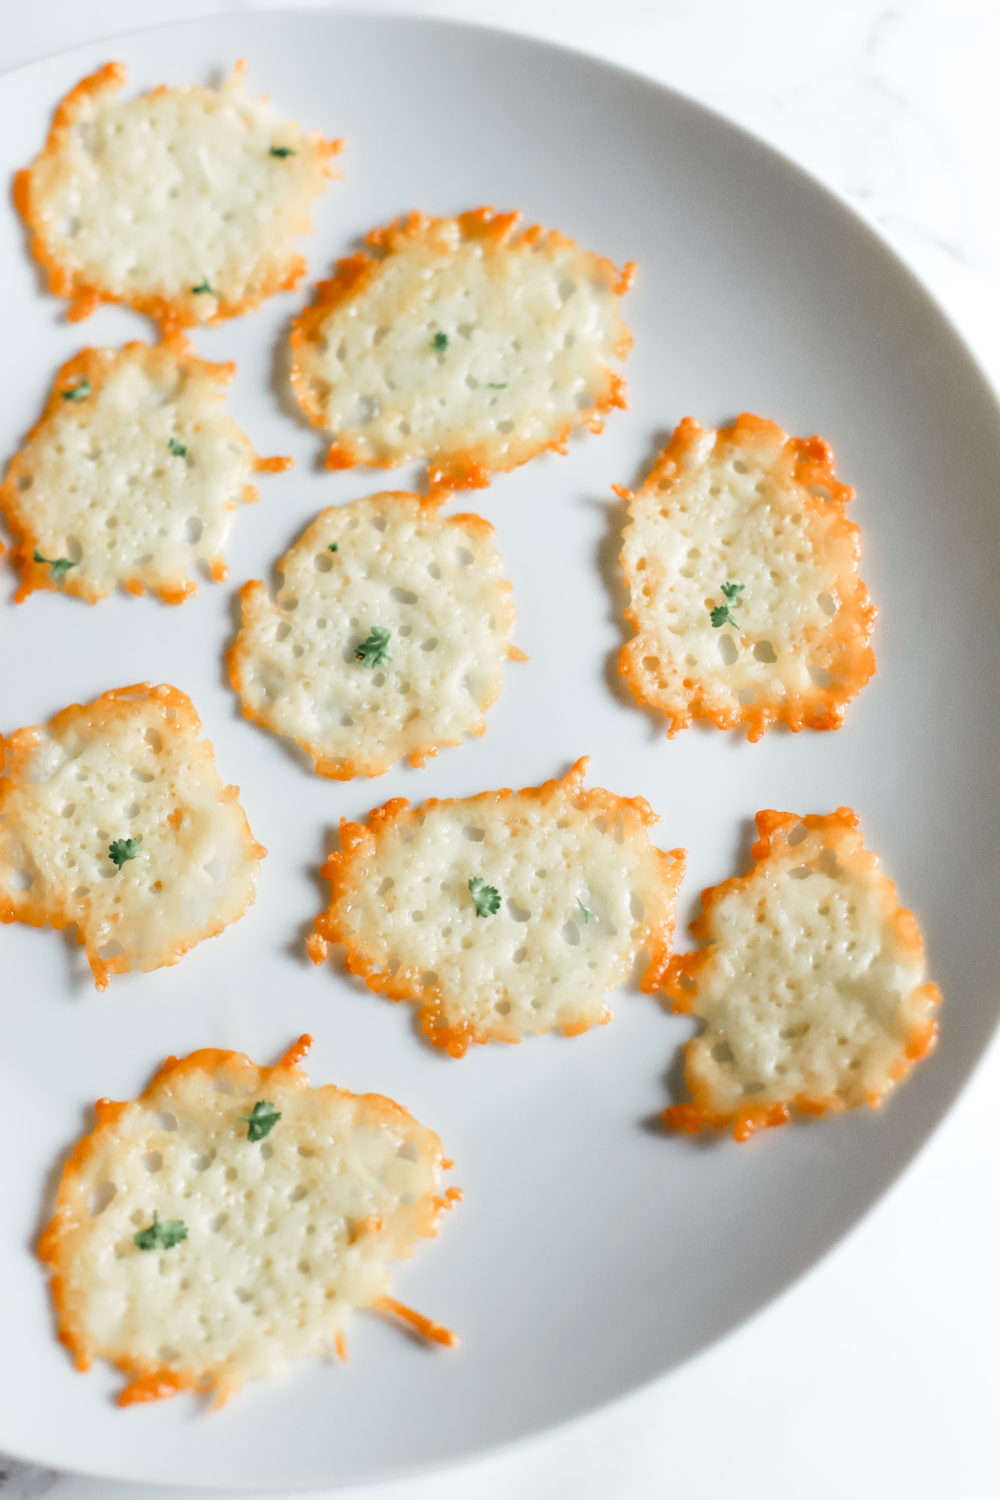 These parmesan chips replace your guilty pleasure while keeping you in ketosis. They're gluten free, low carb, and ketogenic friendly - only 5 minutes to make! Parmesan Crips   Keto Chips   Keto snacks   Weight Loss   Atkins Diet   Keto Diet   Easy Low Carb Snacks   Appetizers   Christmas Recipe   Holiday Appetizer   Oven Baked  